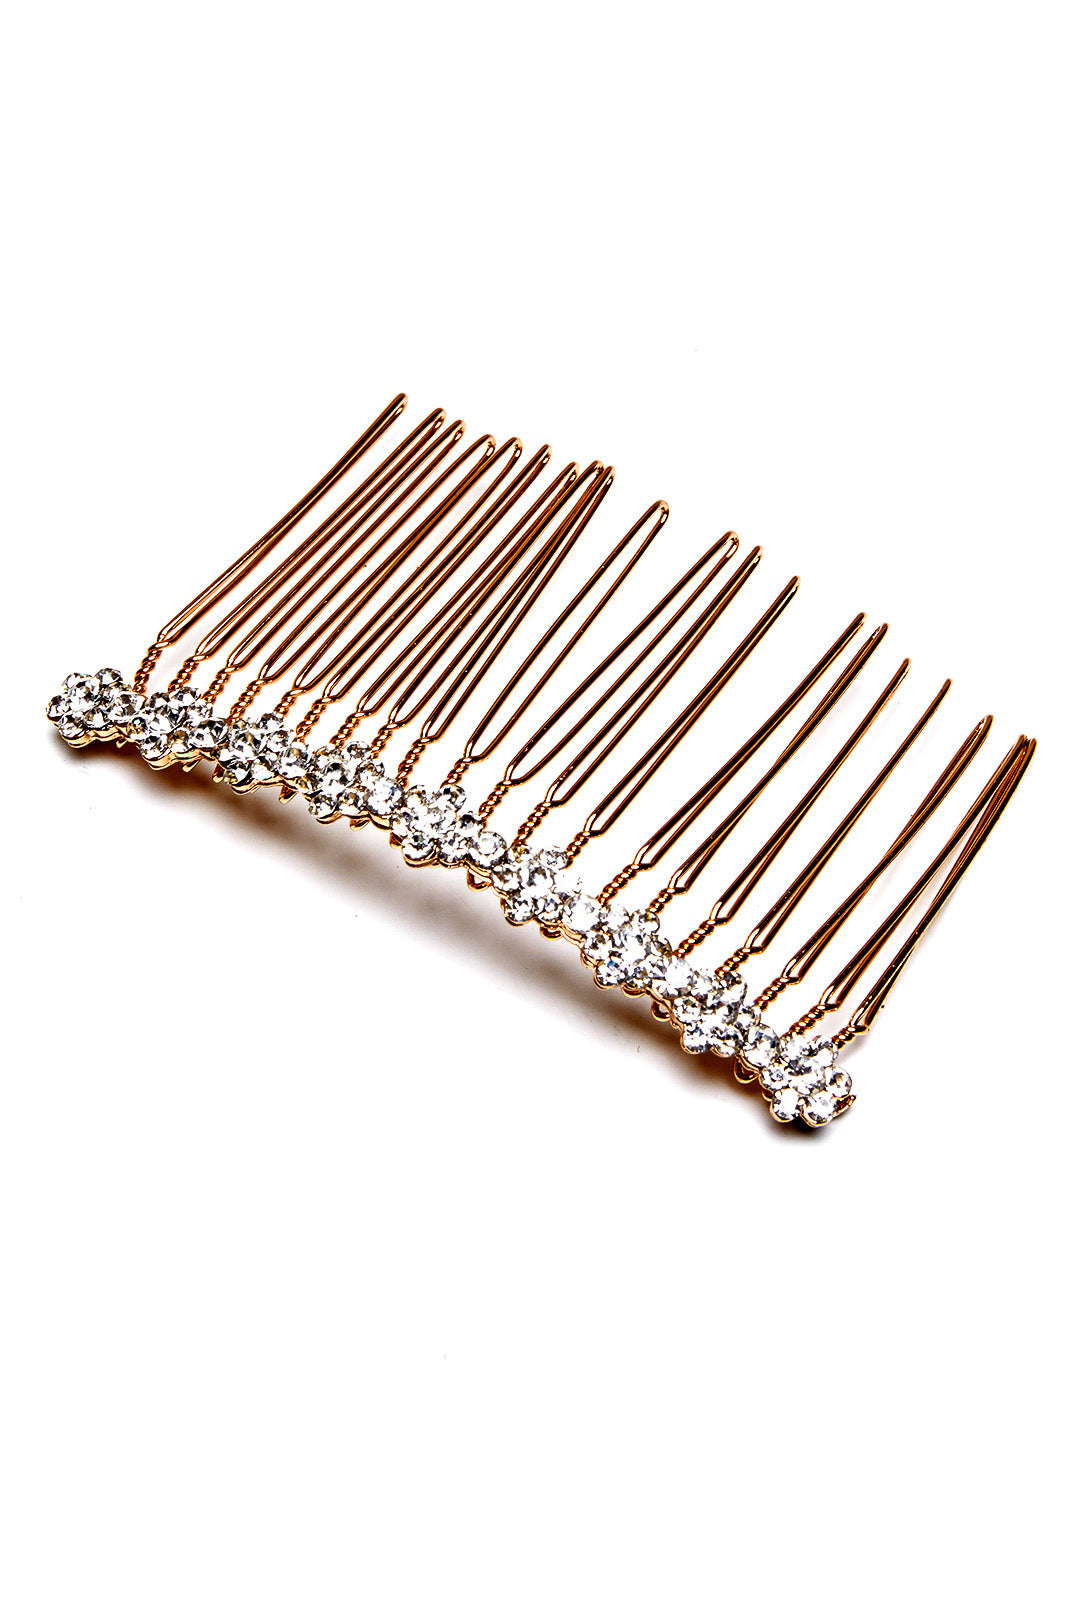 GOLD DIAMANTE HAIR COMB